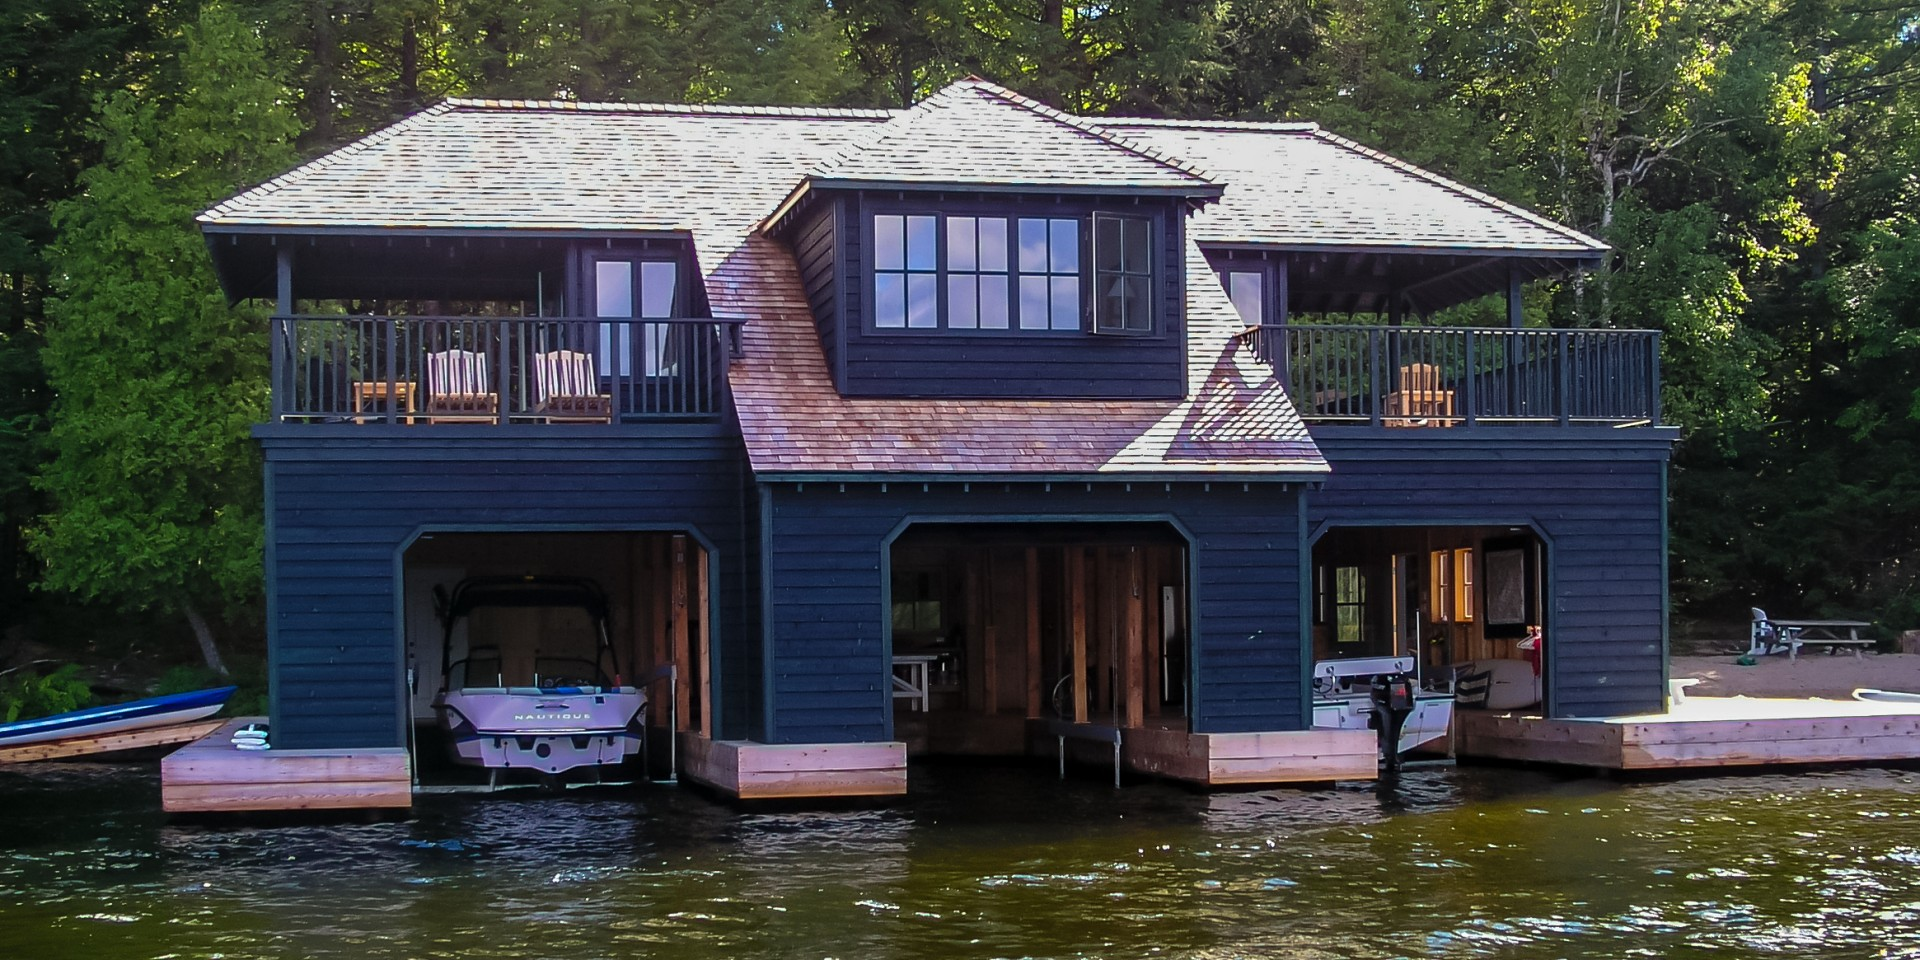 boathouse-2-1920x960.jpg